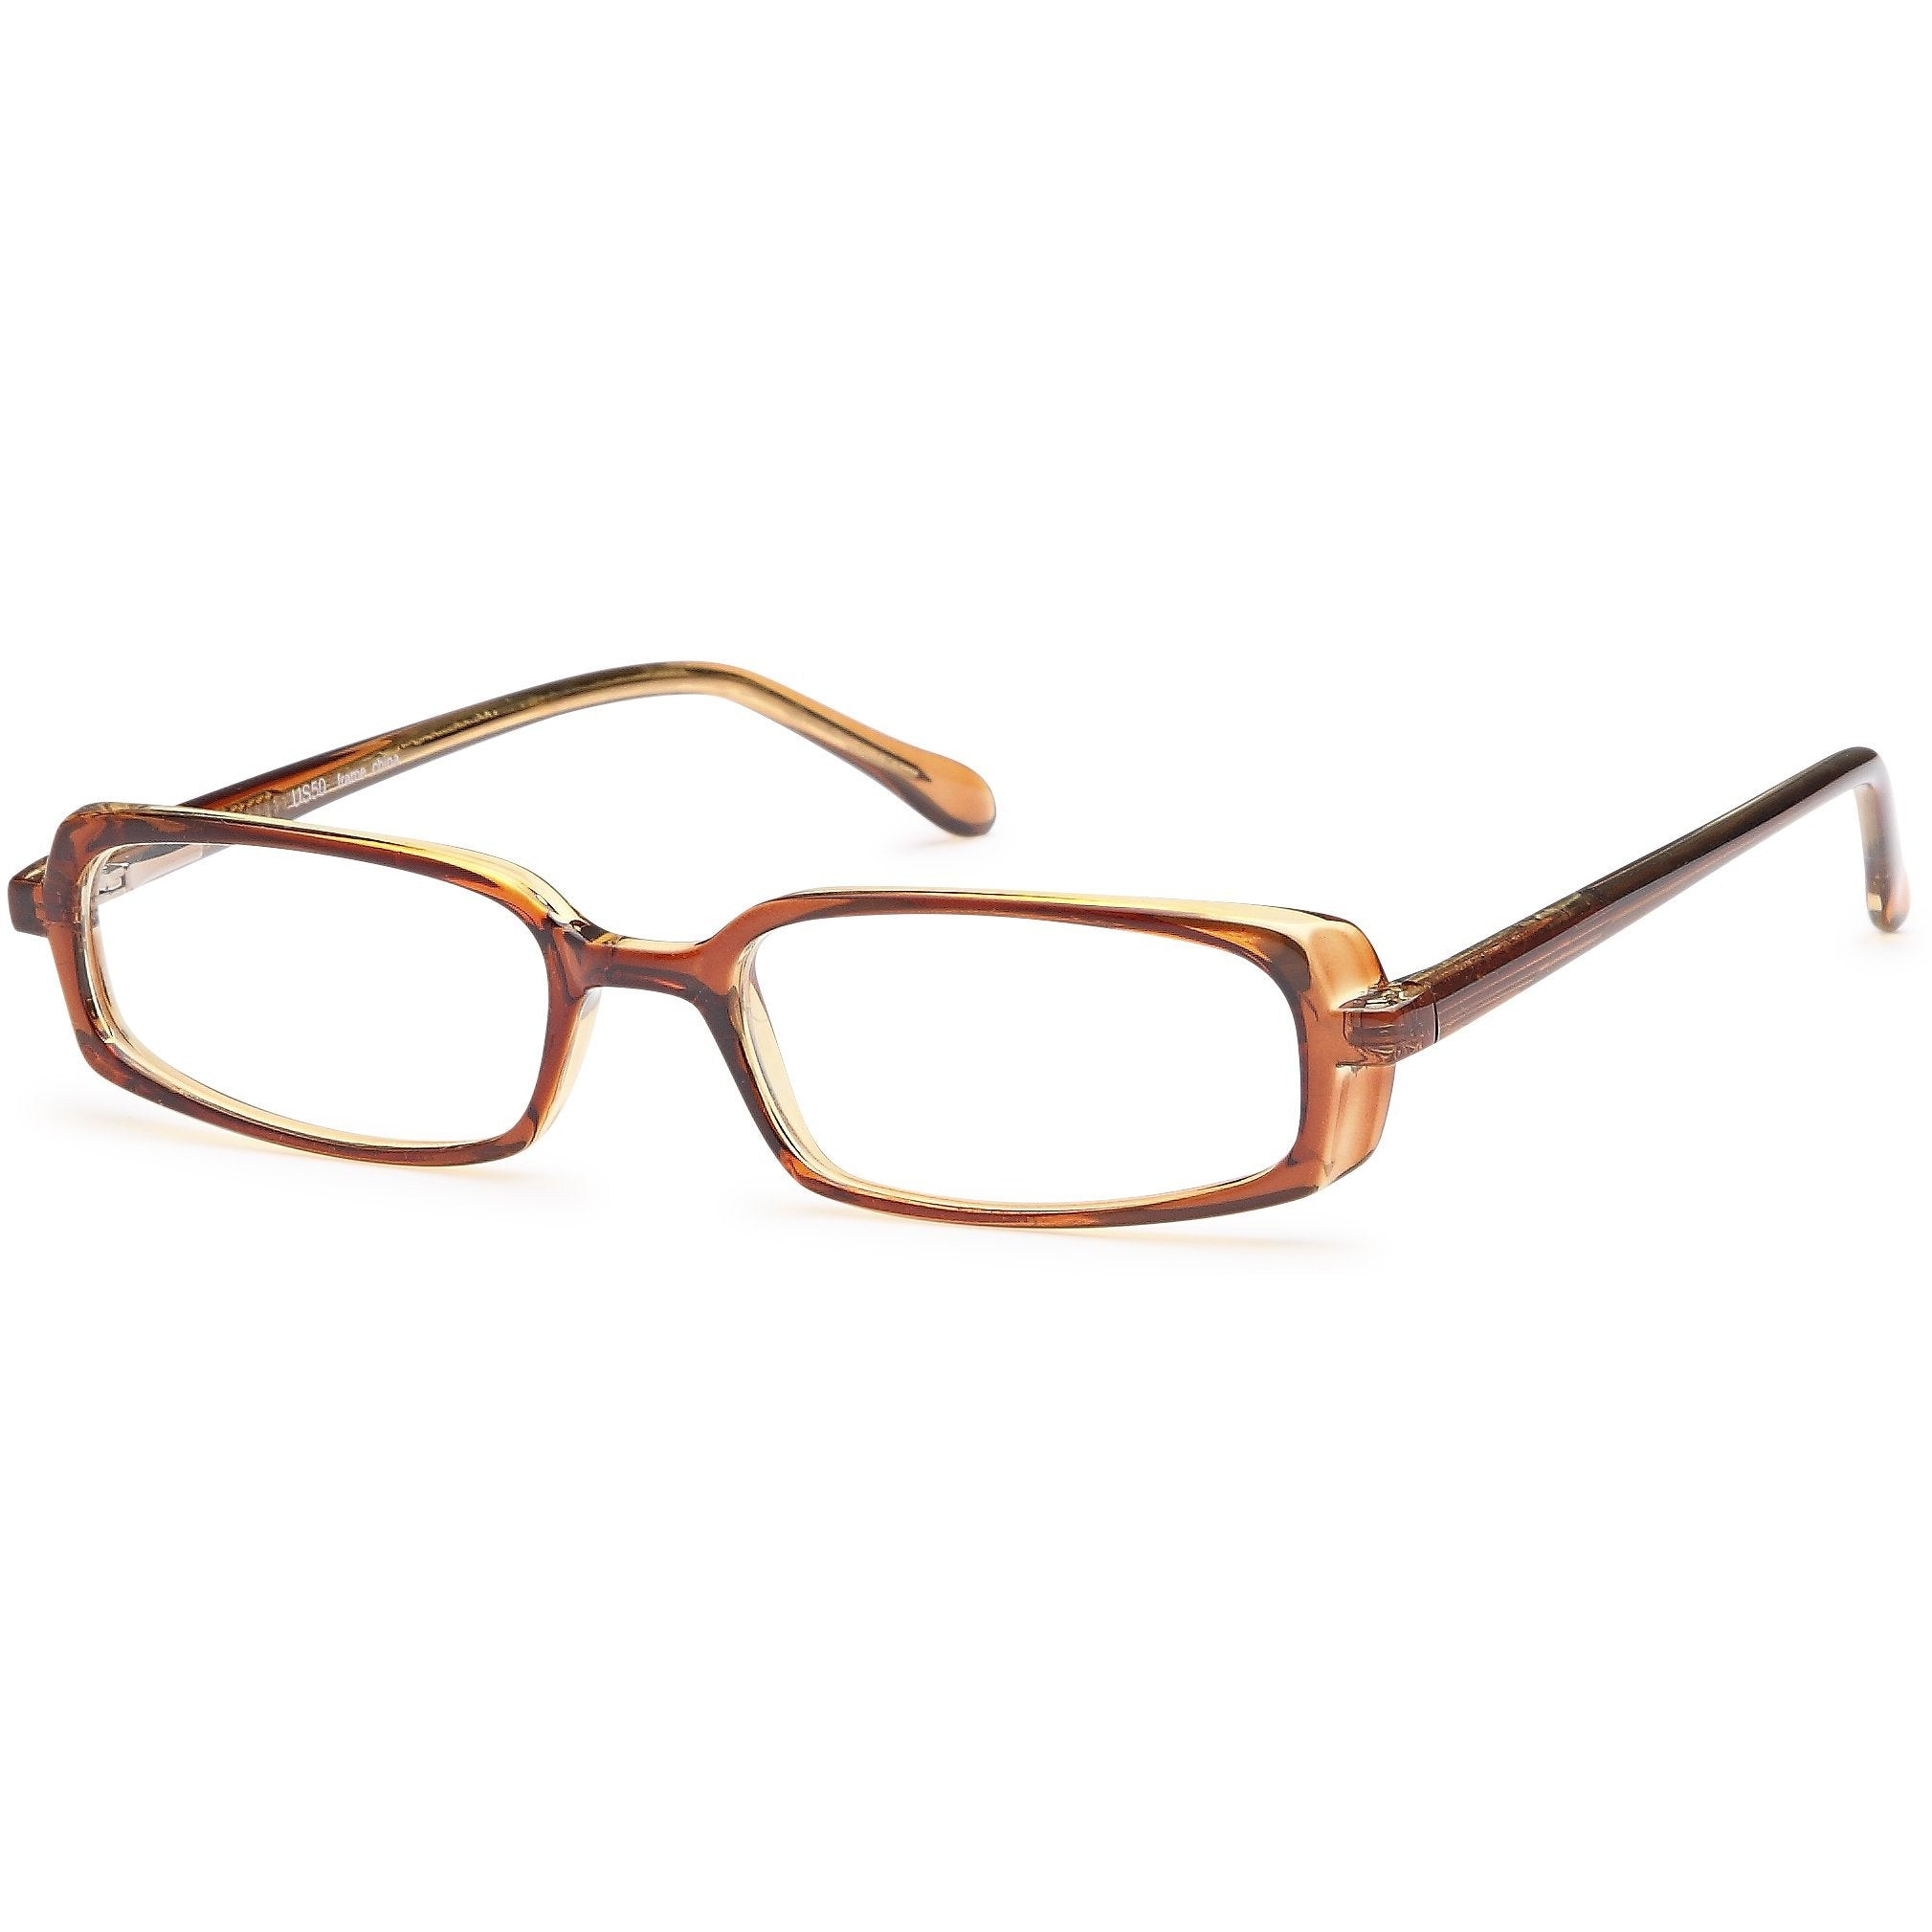 2U Prescription Glasses US 50 Optical Eyeglasses Frames